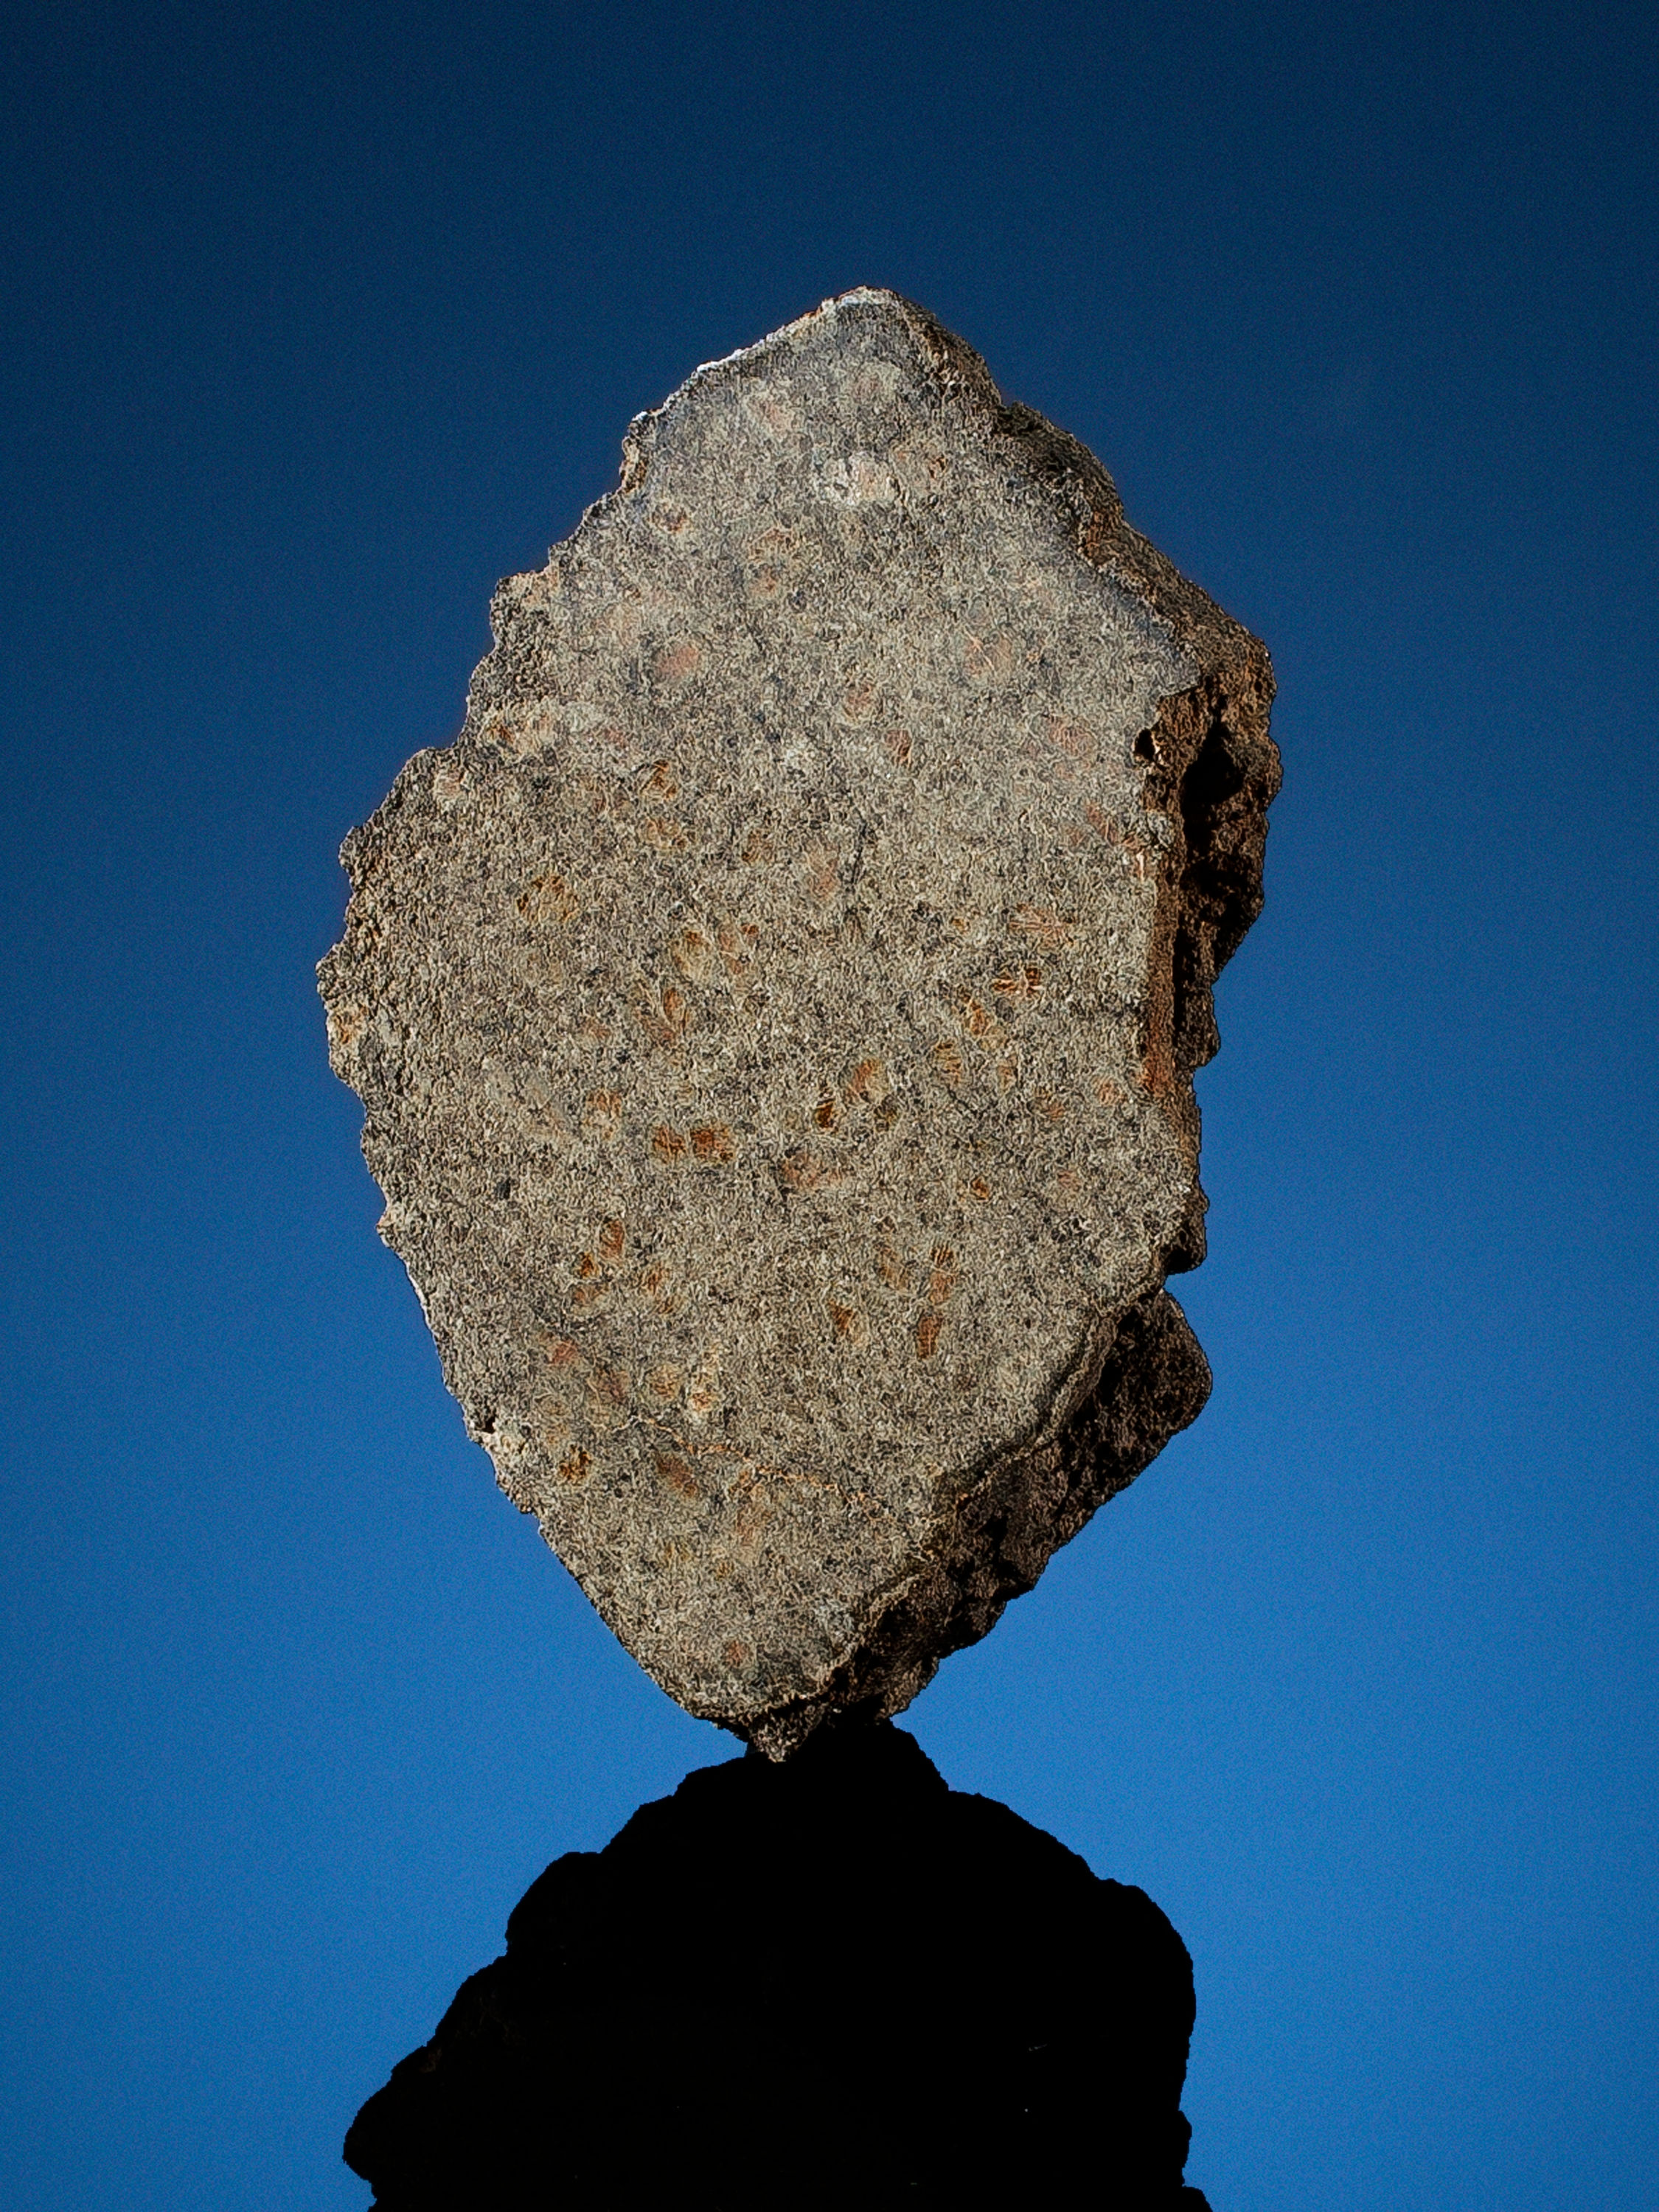 Mars Meteorite May Fetch $160,000 At Auction